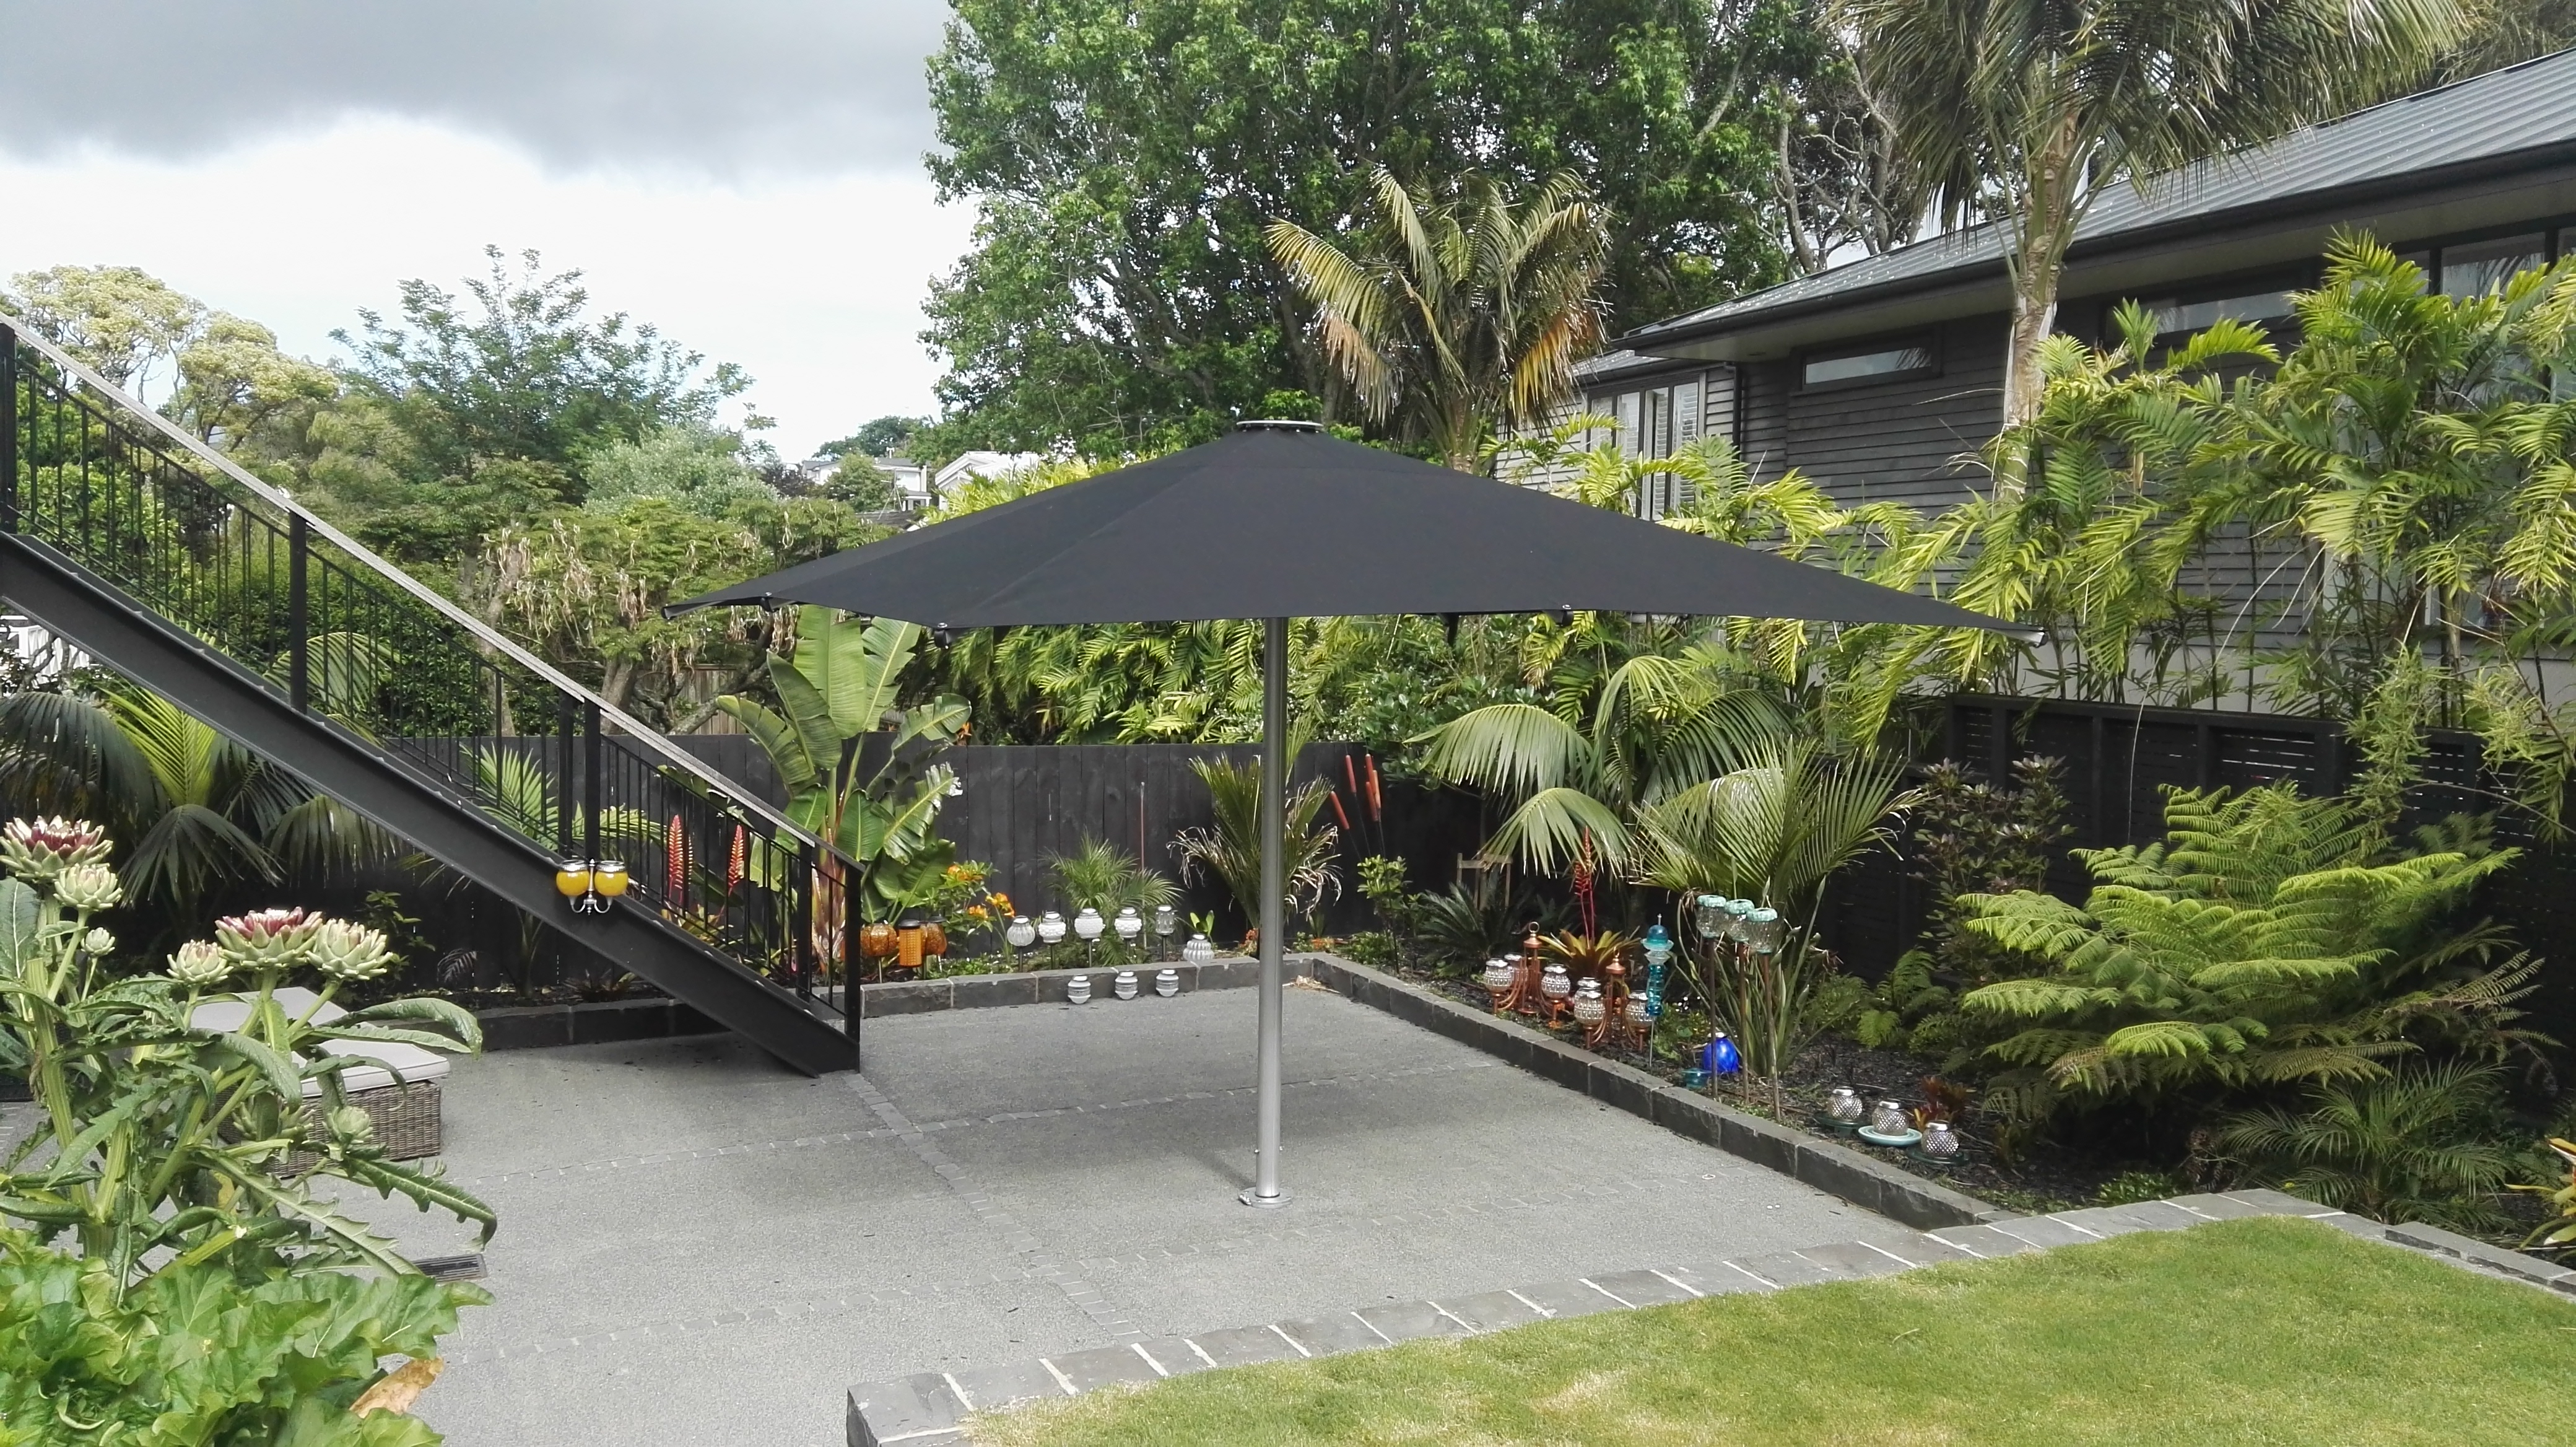 Tempest Umbrella Installed at Residential Home in Remuera